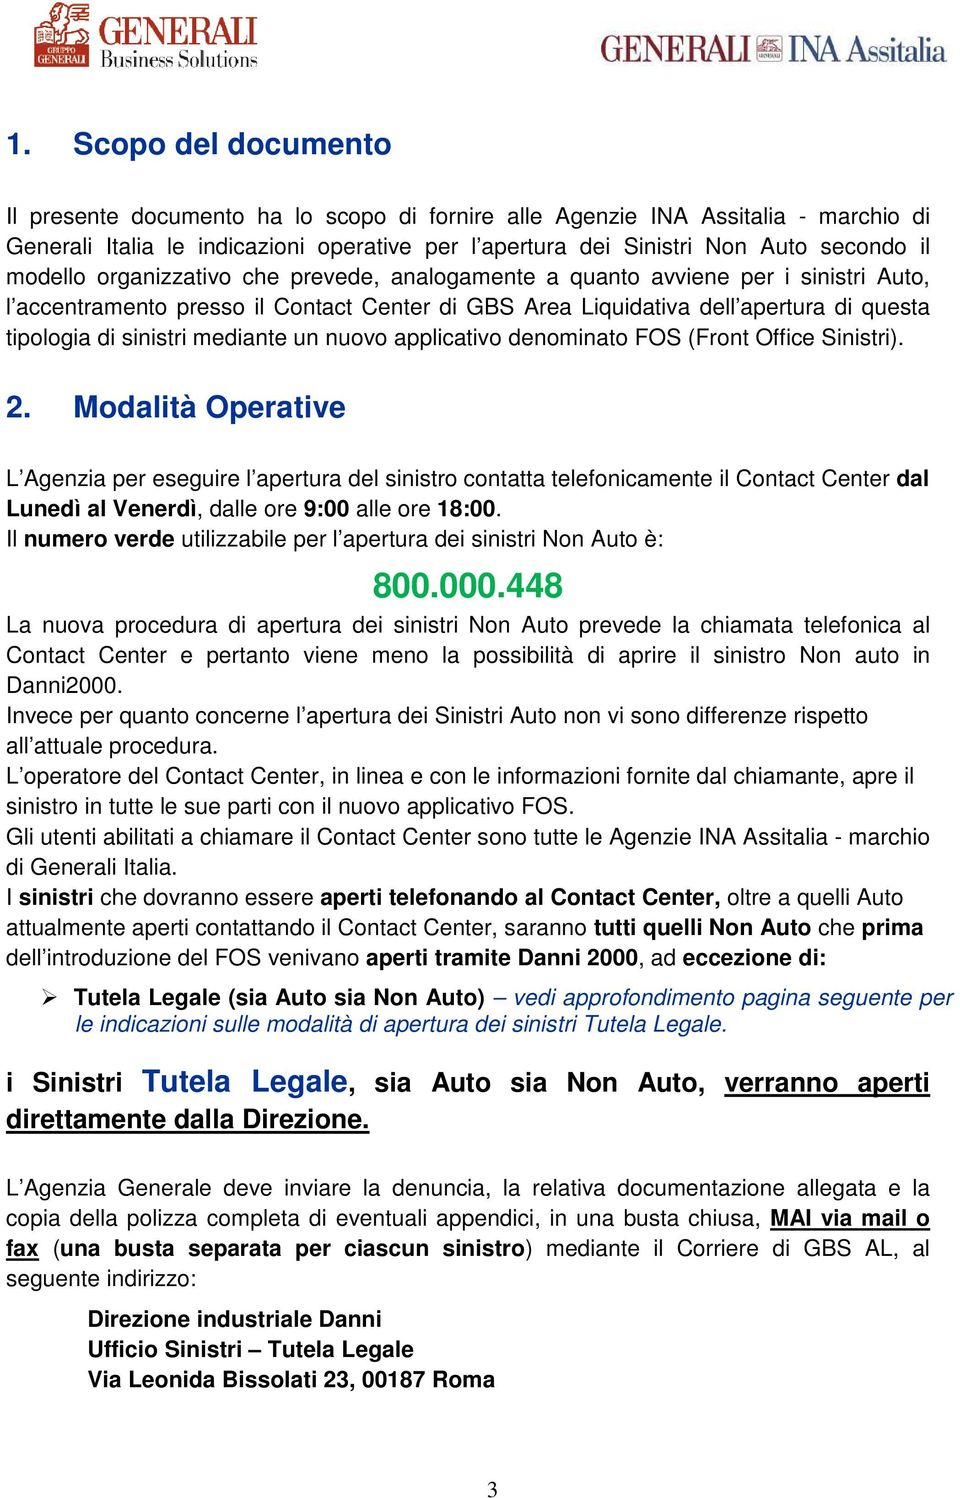 mediante un nuovo applicativo denominato FOS (Front Office Sinistri). 2.